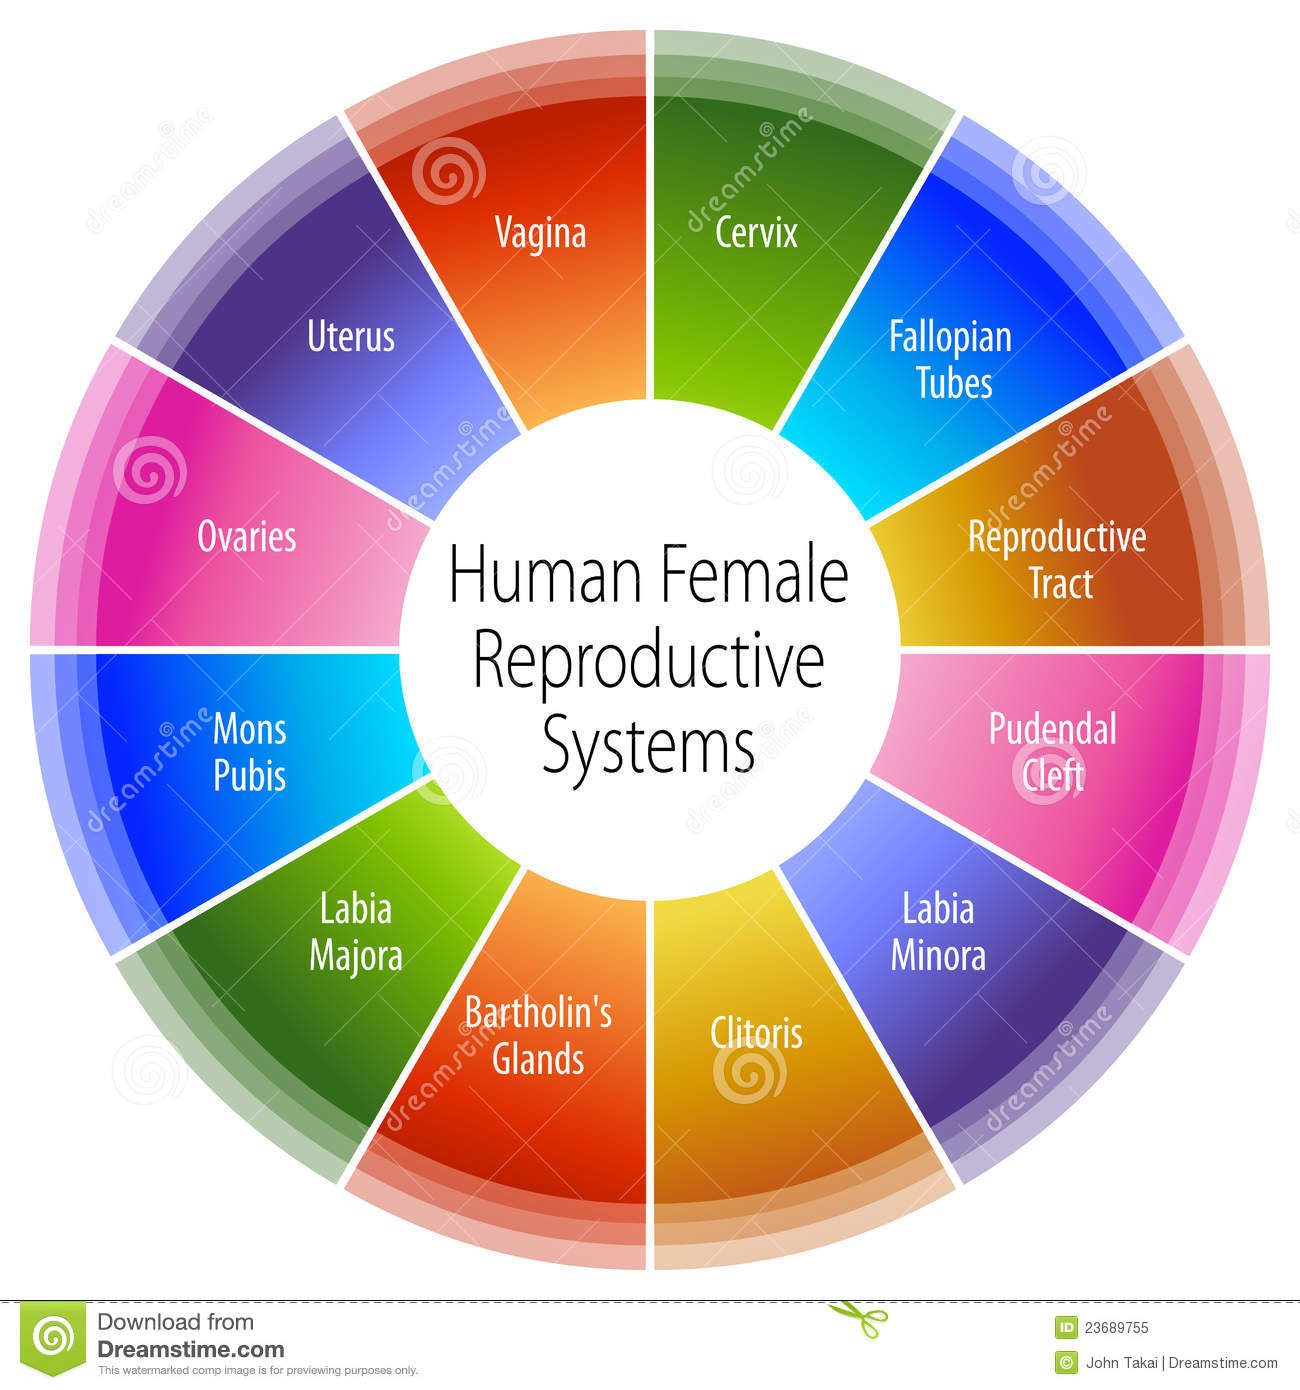 More similar stock images of ` Human Female Reproductive Systems Chart ...